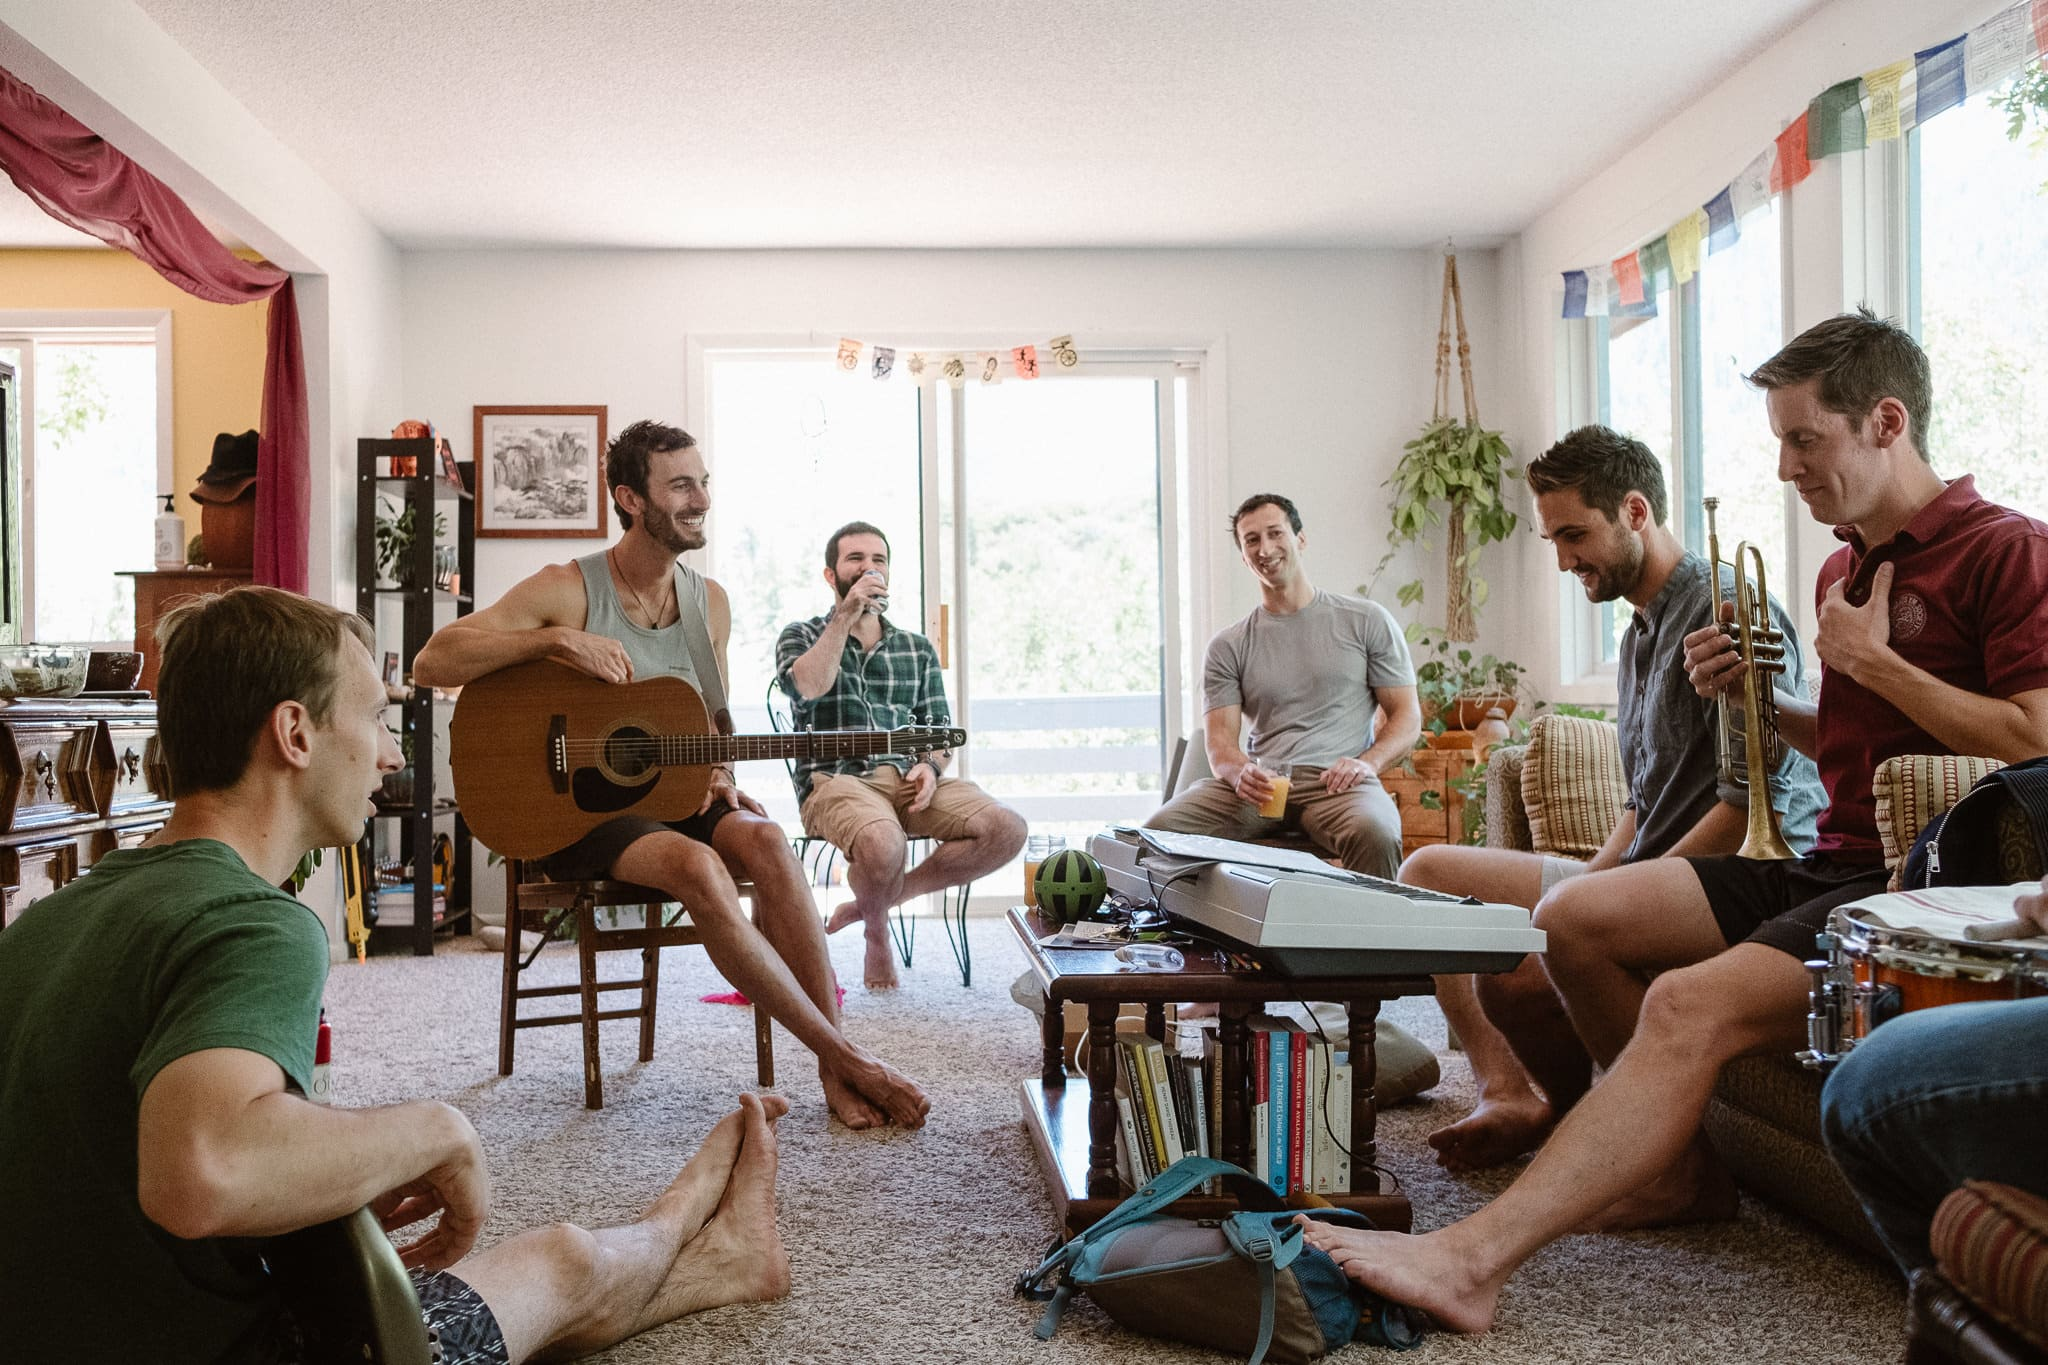 Redstone Inn wedding photographer, Carbondale wedding photographer, Colorado intimate wedding photographer, groom and groomsmen playing guitar and getting ready